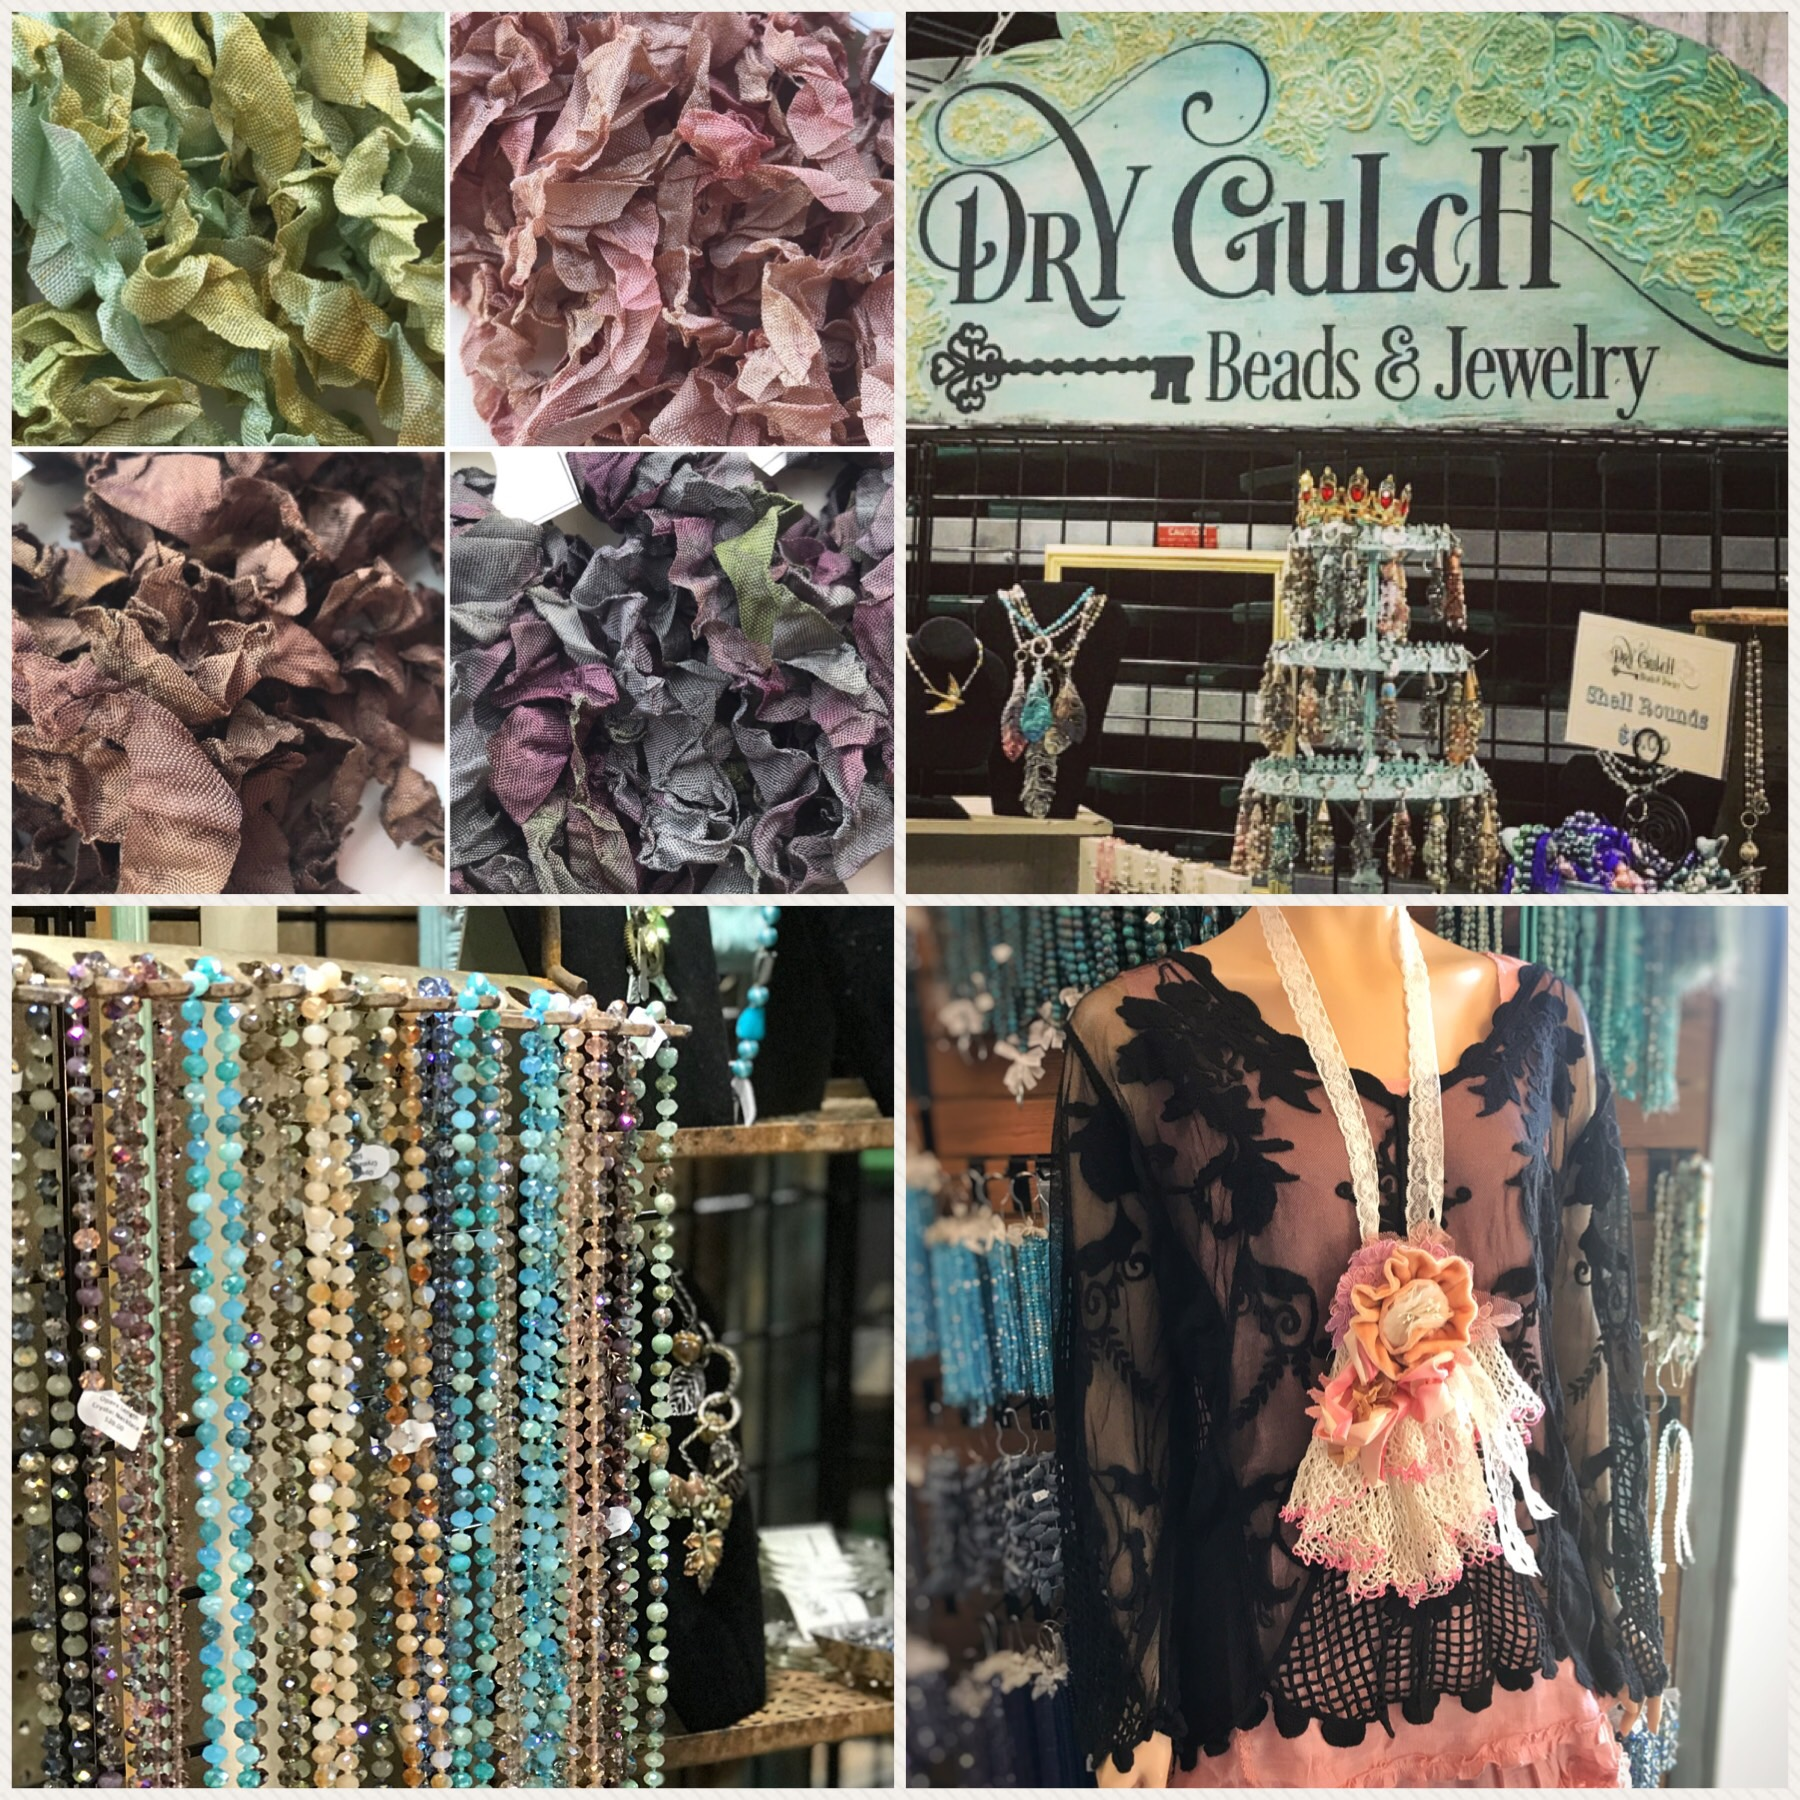 Dry Gulch Beads & Jewelry